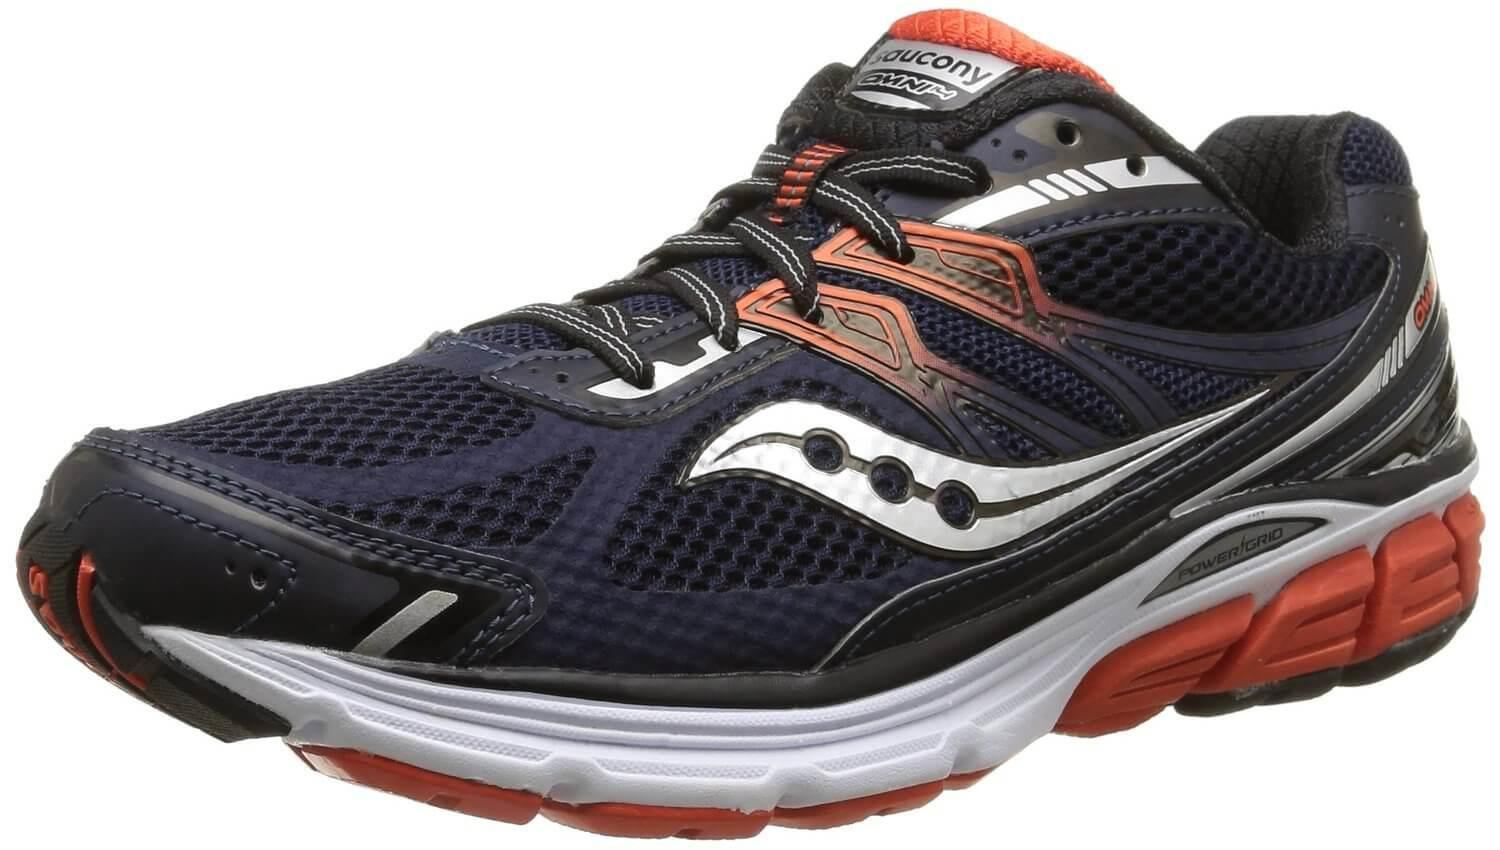 7b76ad12990f The Saucony Omni 14 uses a combination mesh synthetic leather upper.